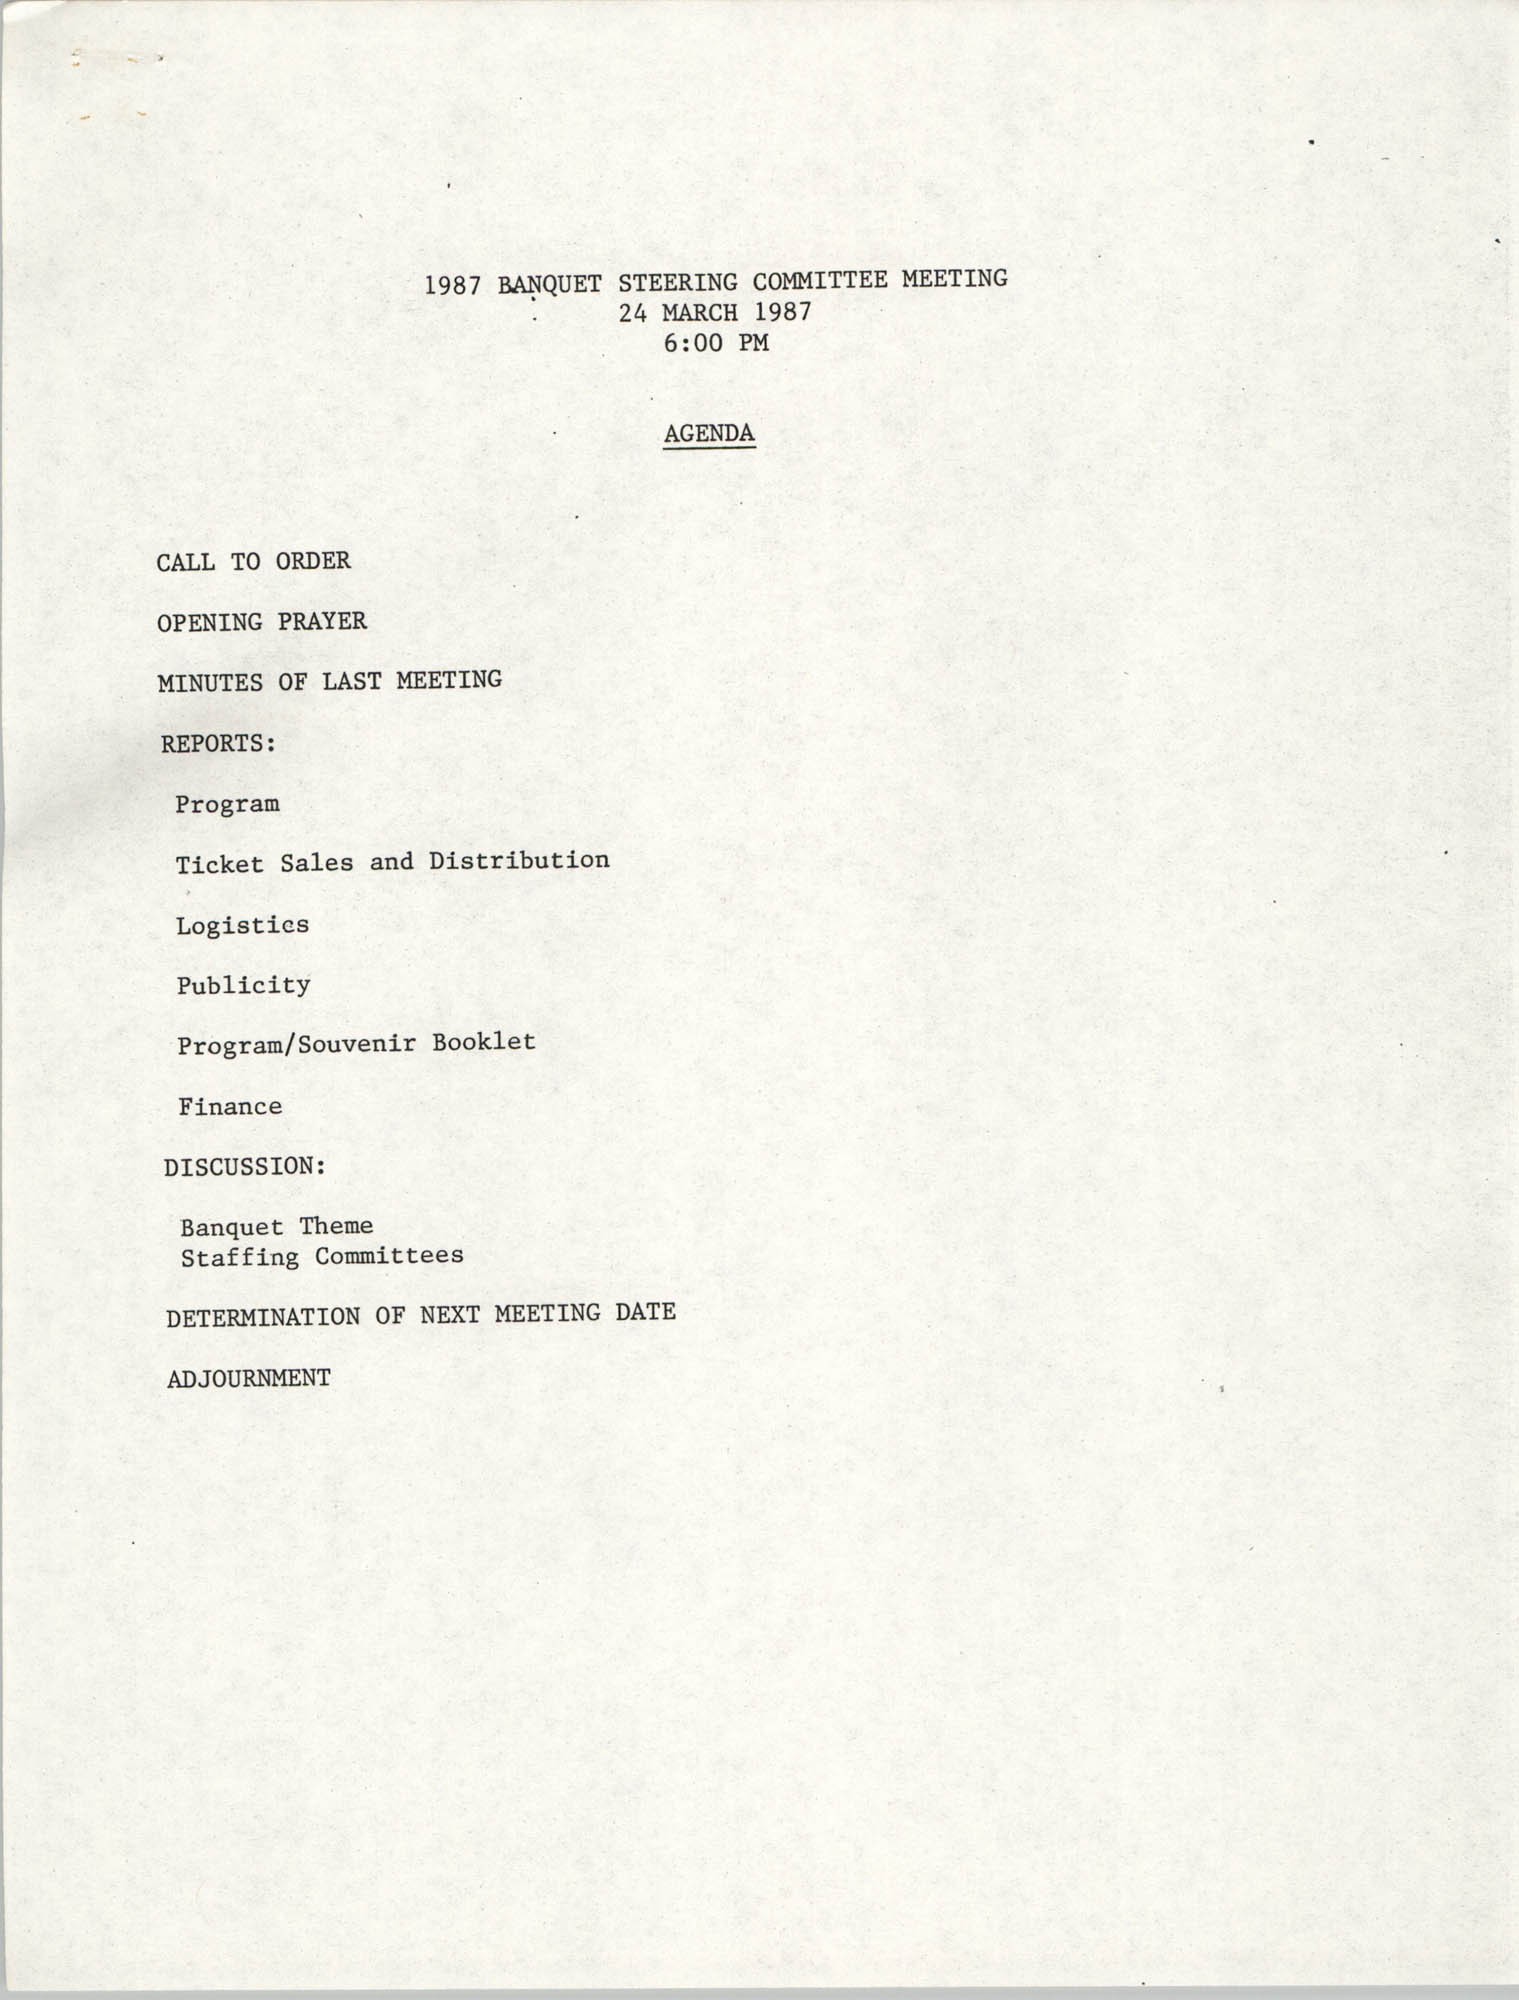 Agenda, 1987 Banquet Steering Committee Meeting, March 24, 1987